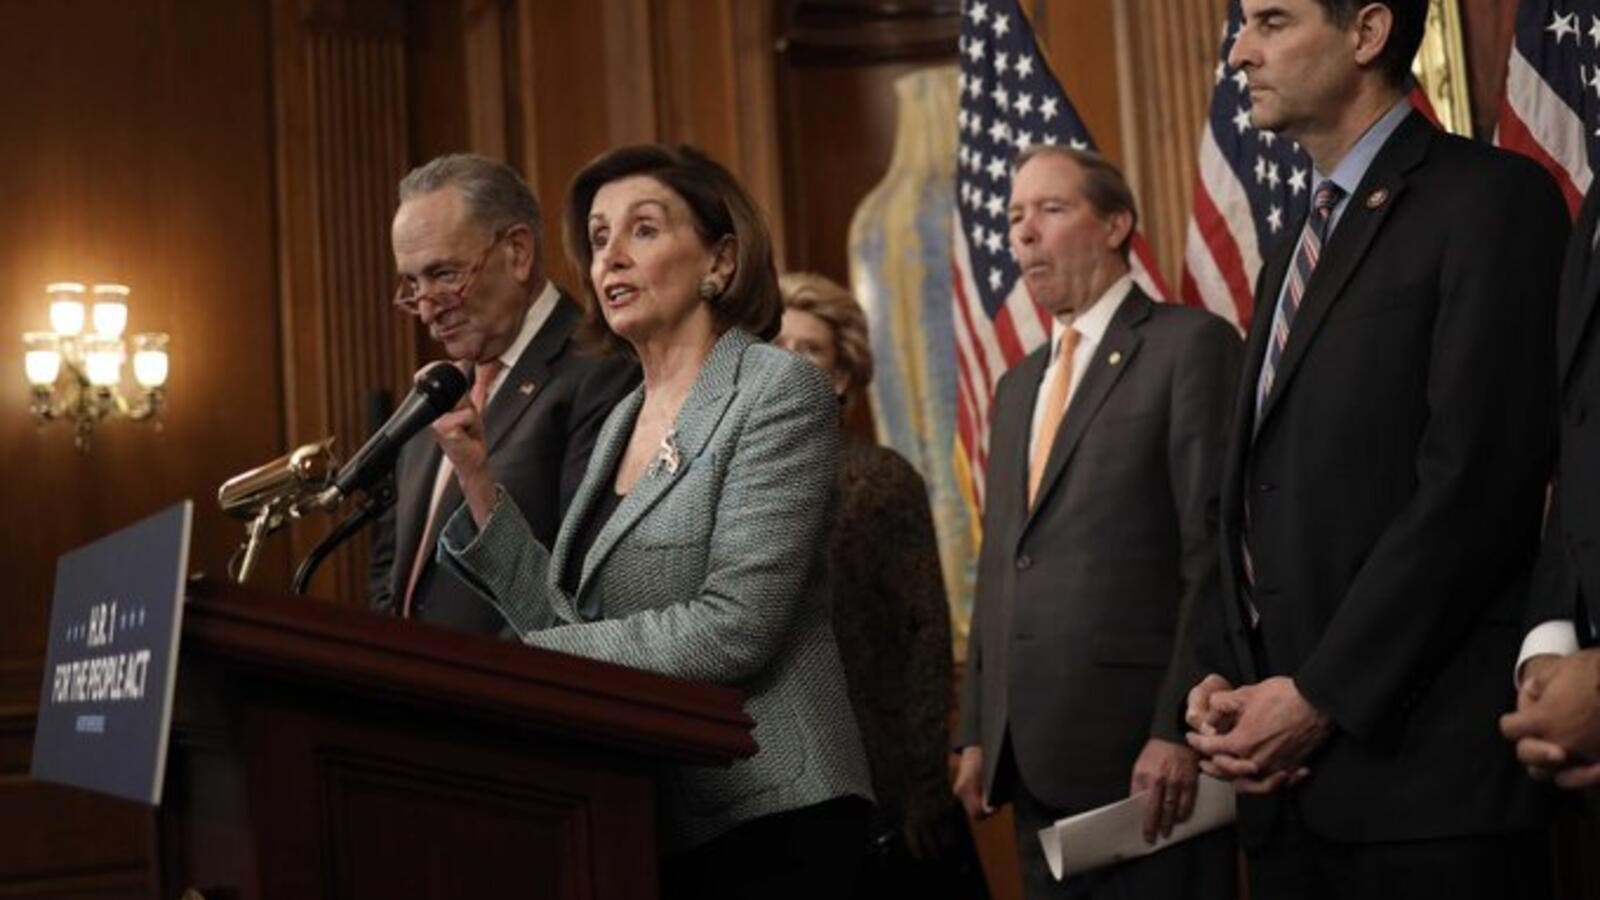 Pelosi telegraphs third coronavirus funding bill amid scramble to calm markets